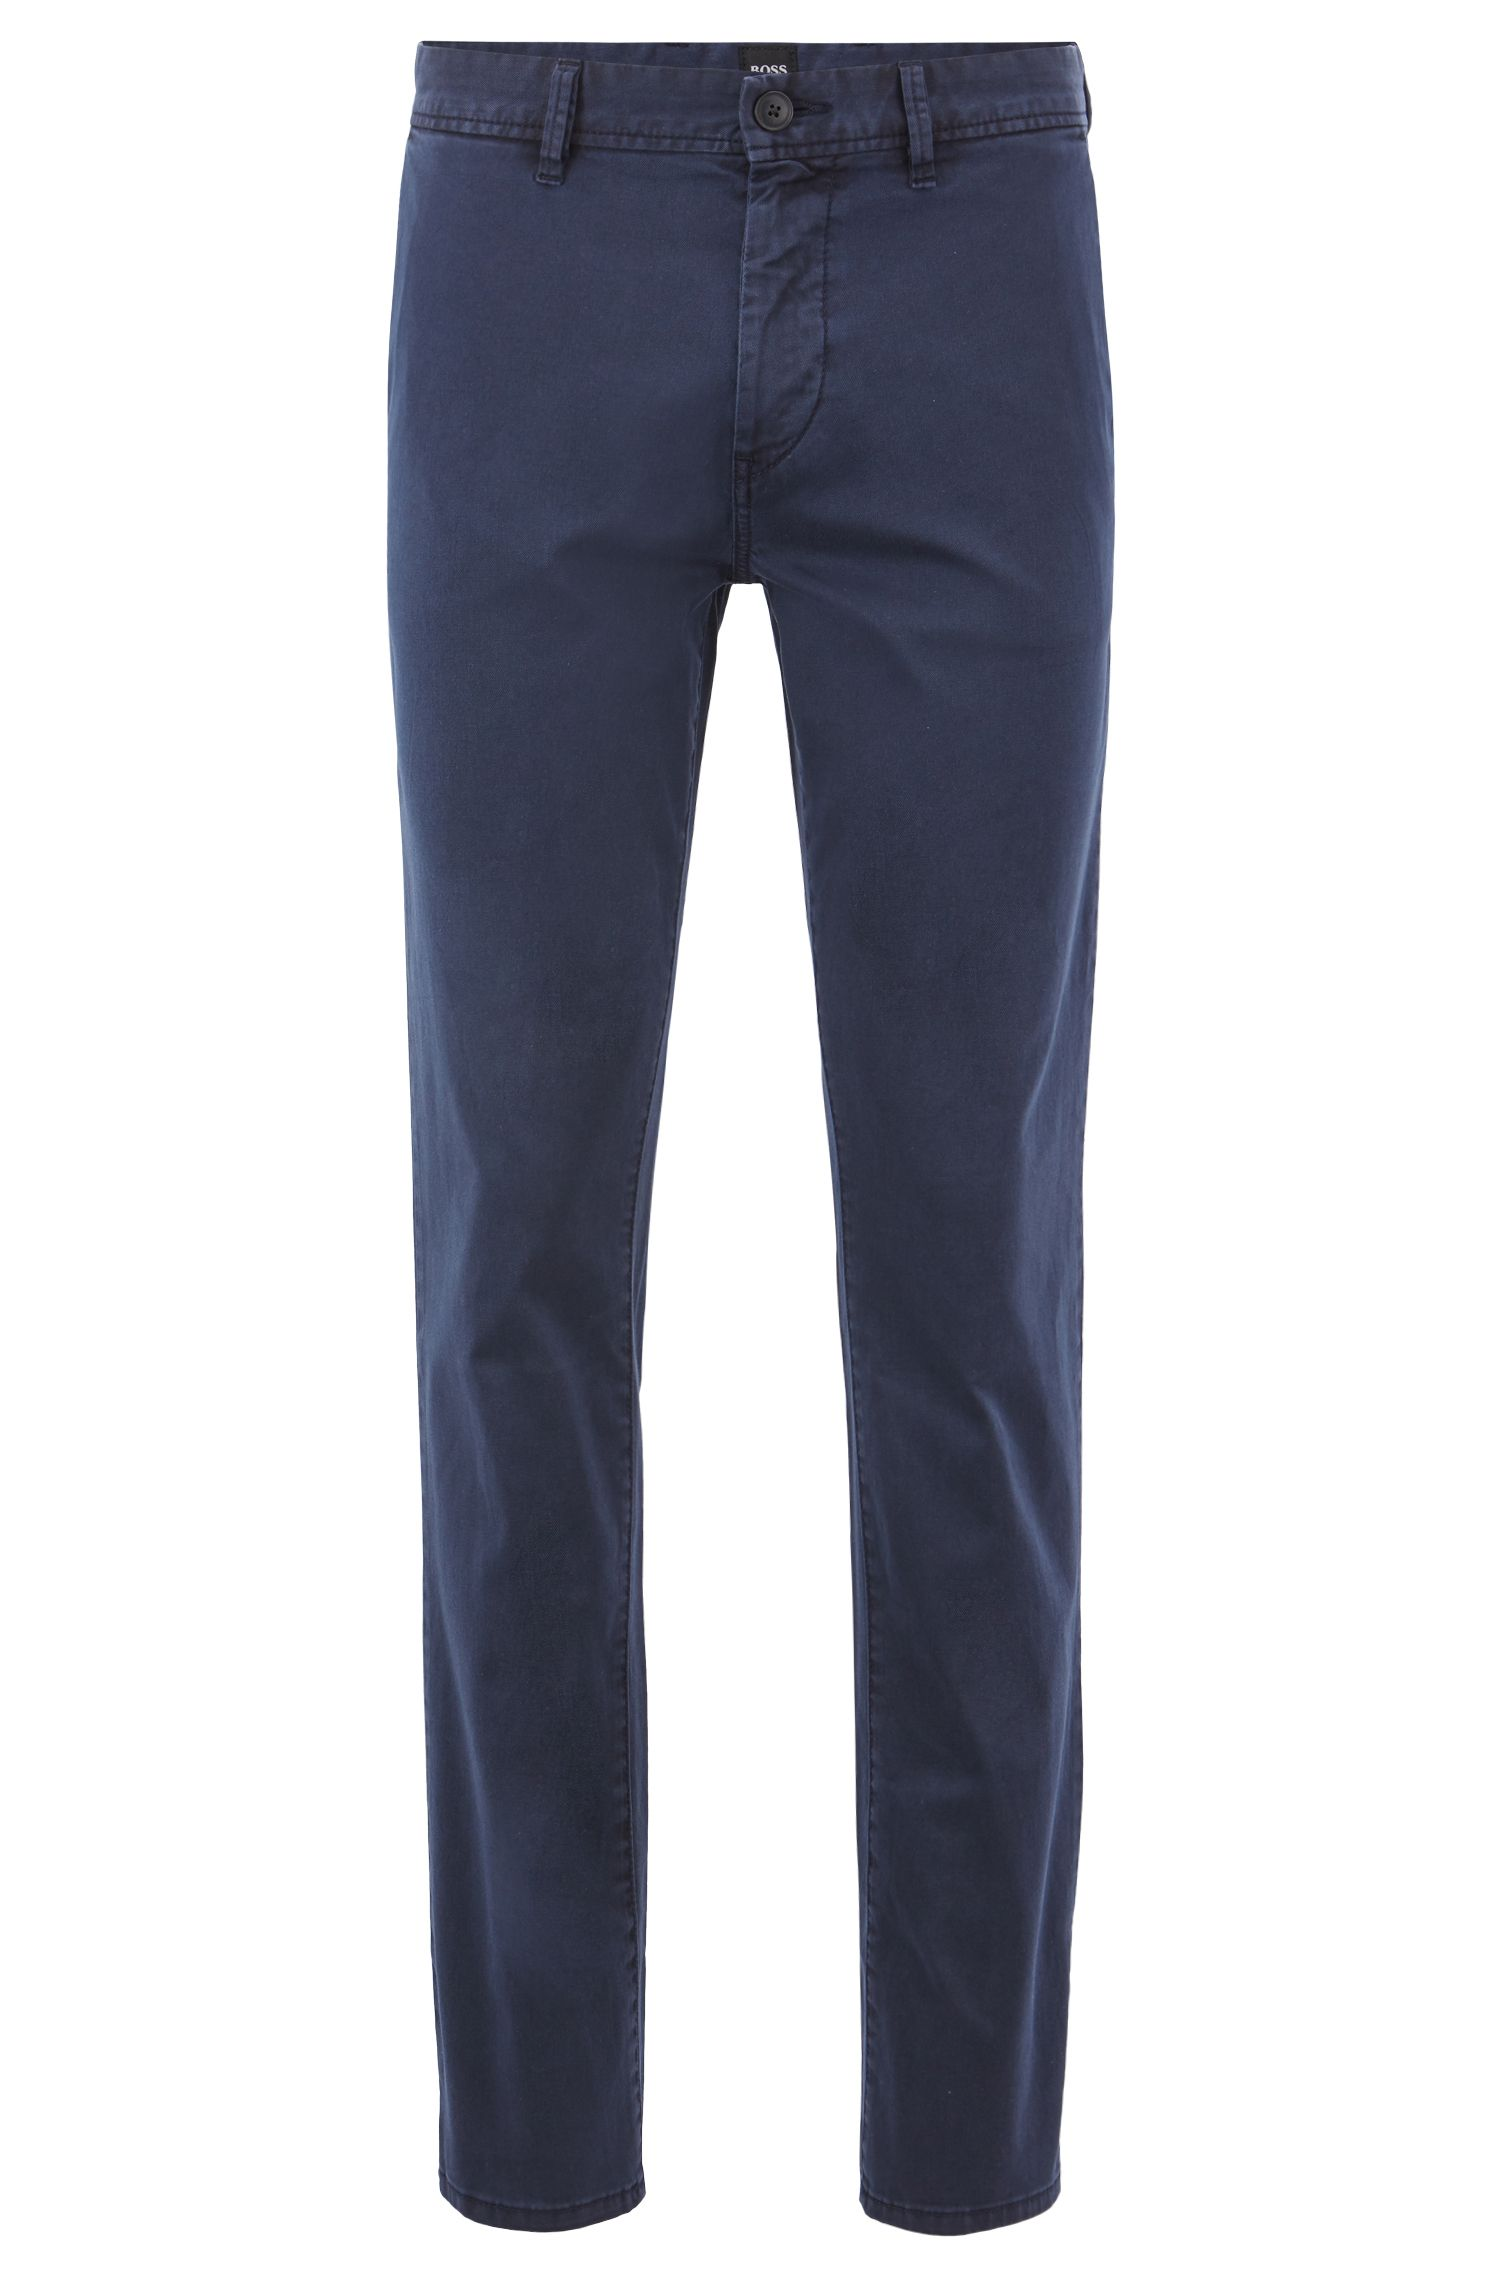 Chino Slim Fit en twill de coton stretch à la teinture pigmentaire, Bleu foncé